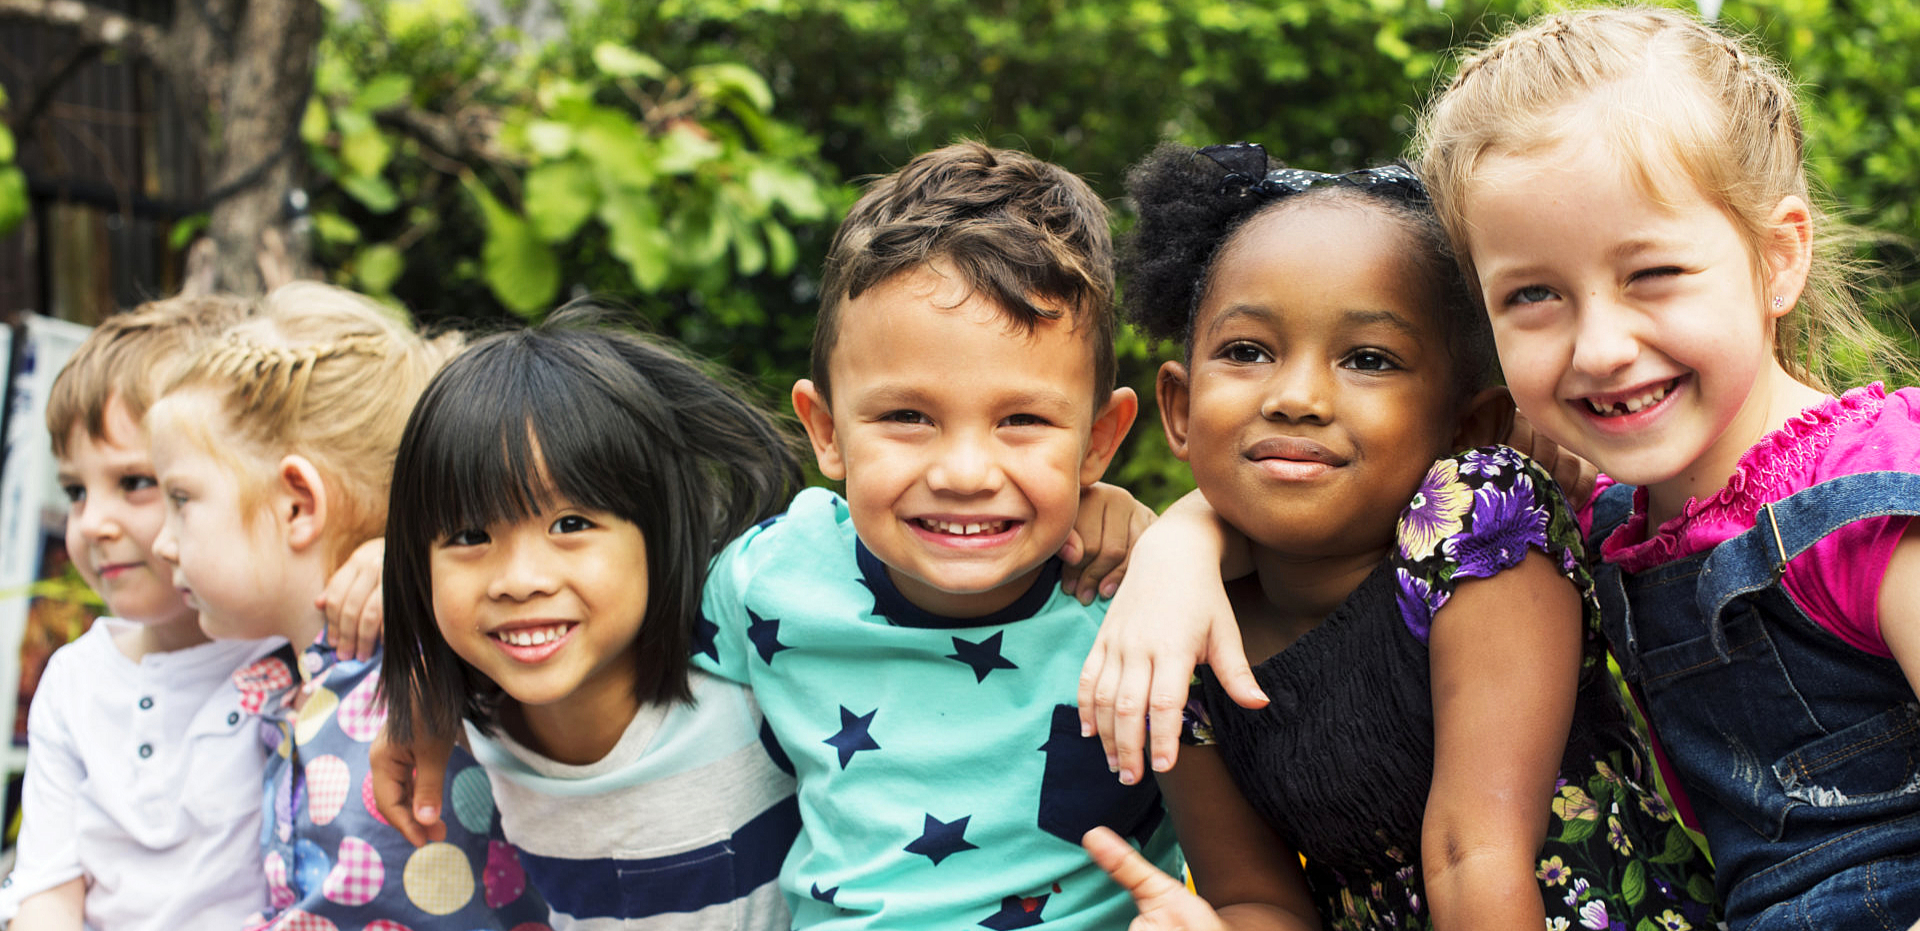 children smiling with arms wrapper around each other